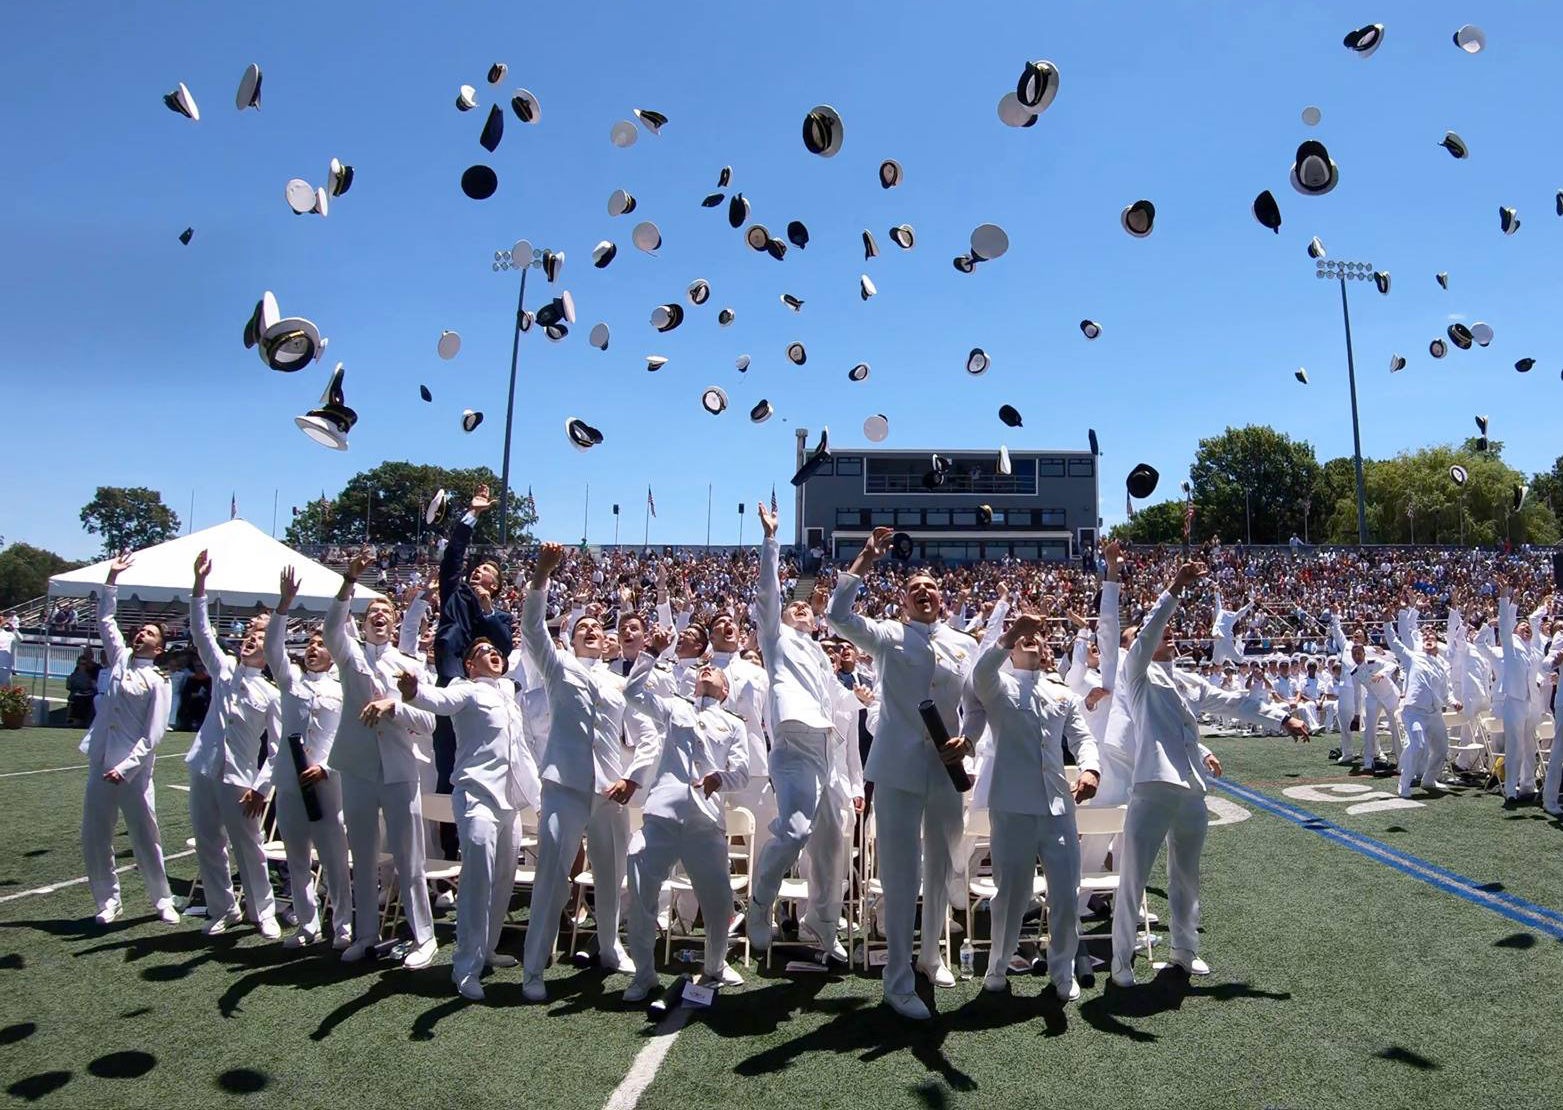 Graduates of the U.S. Merchant Marine Academy's class of 2018 celebrate at Kings Point, New York